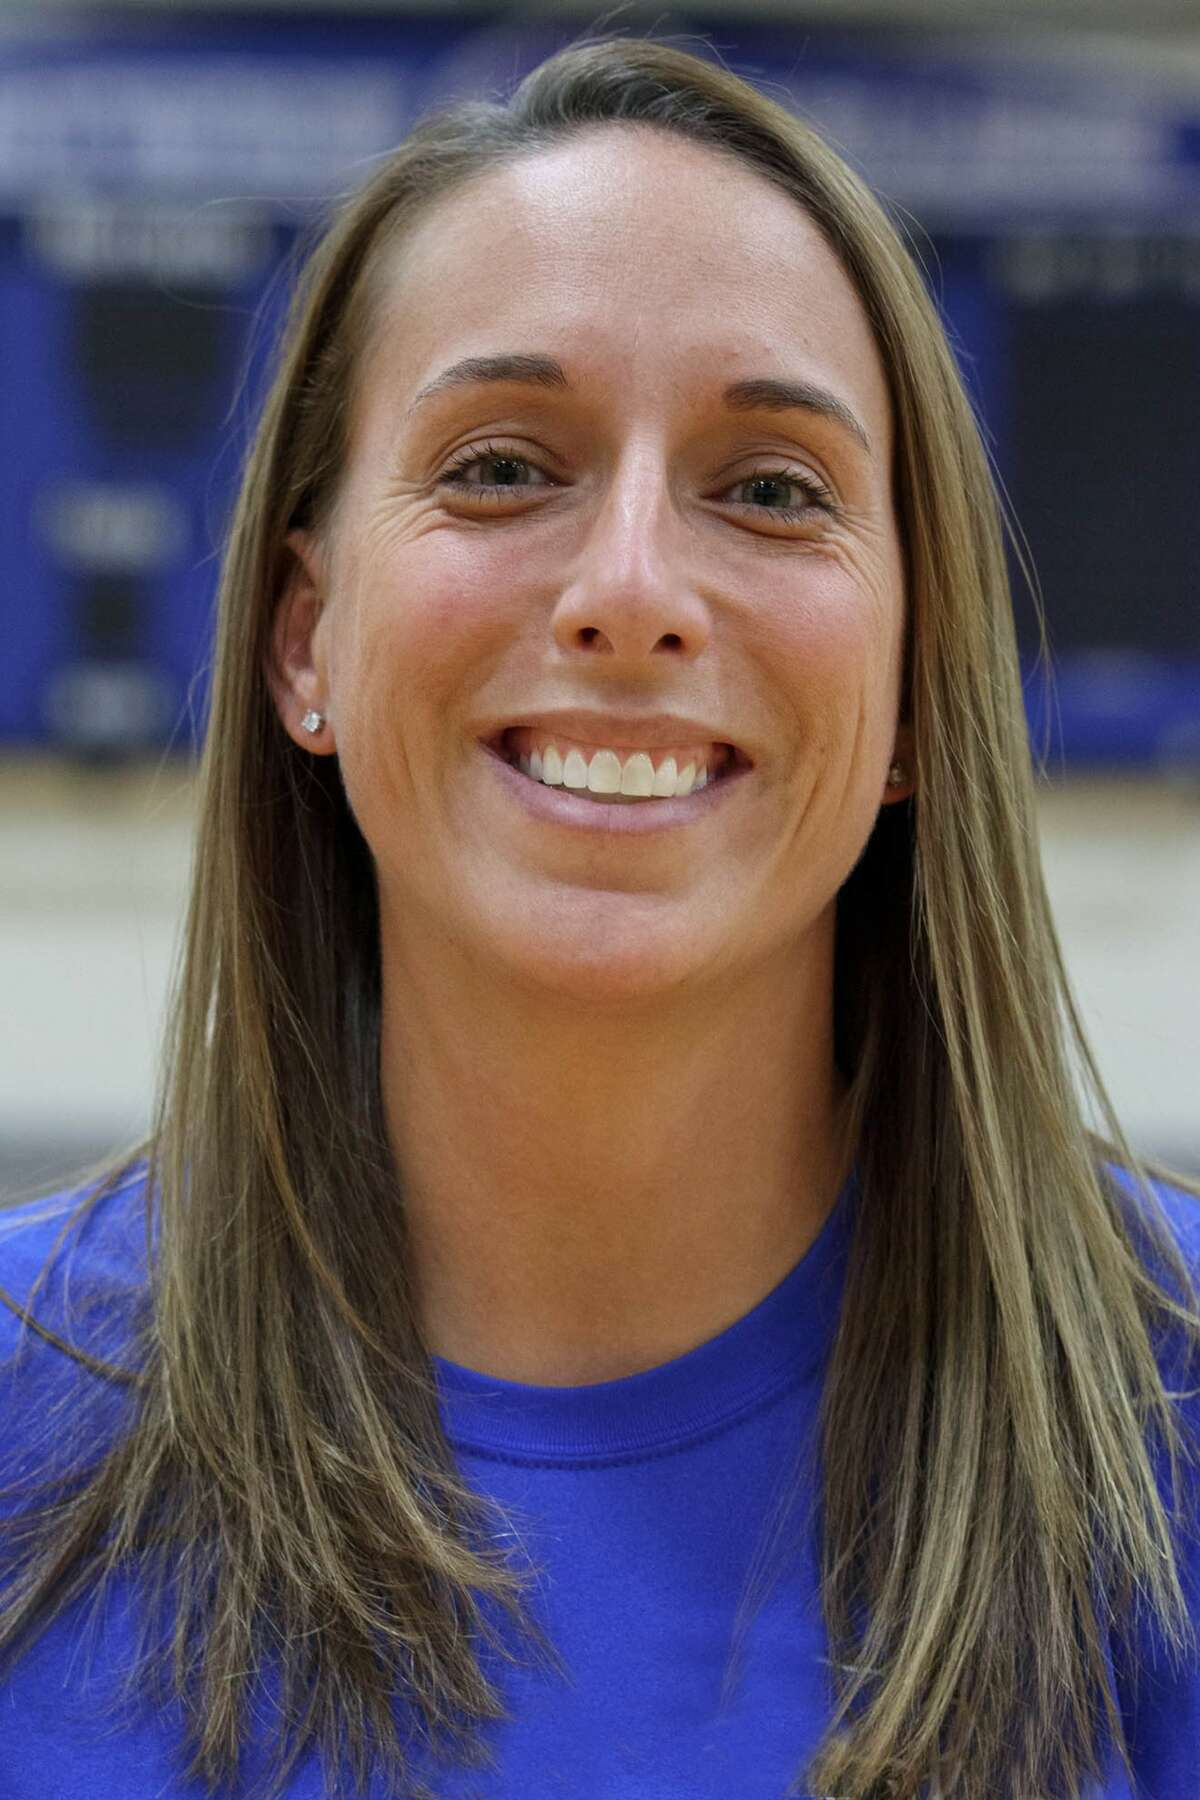 Guilderland High School graduate Katie Marcella returns to the Capital Region as Union College's new women's basketball coach after six years at Hartwick.